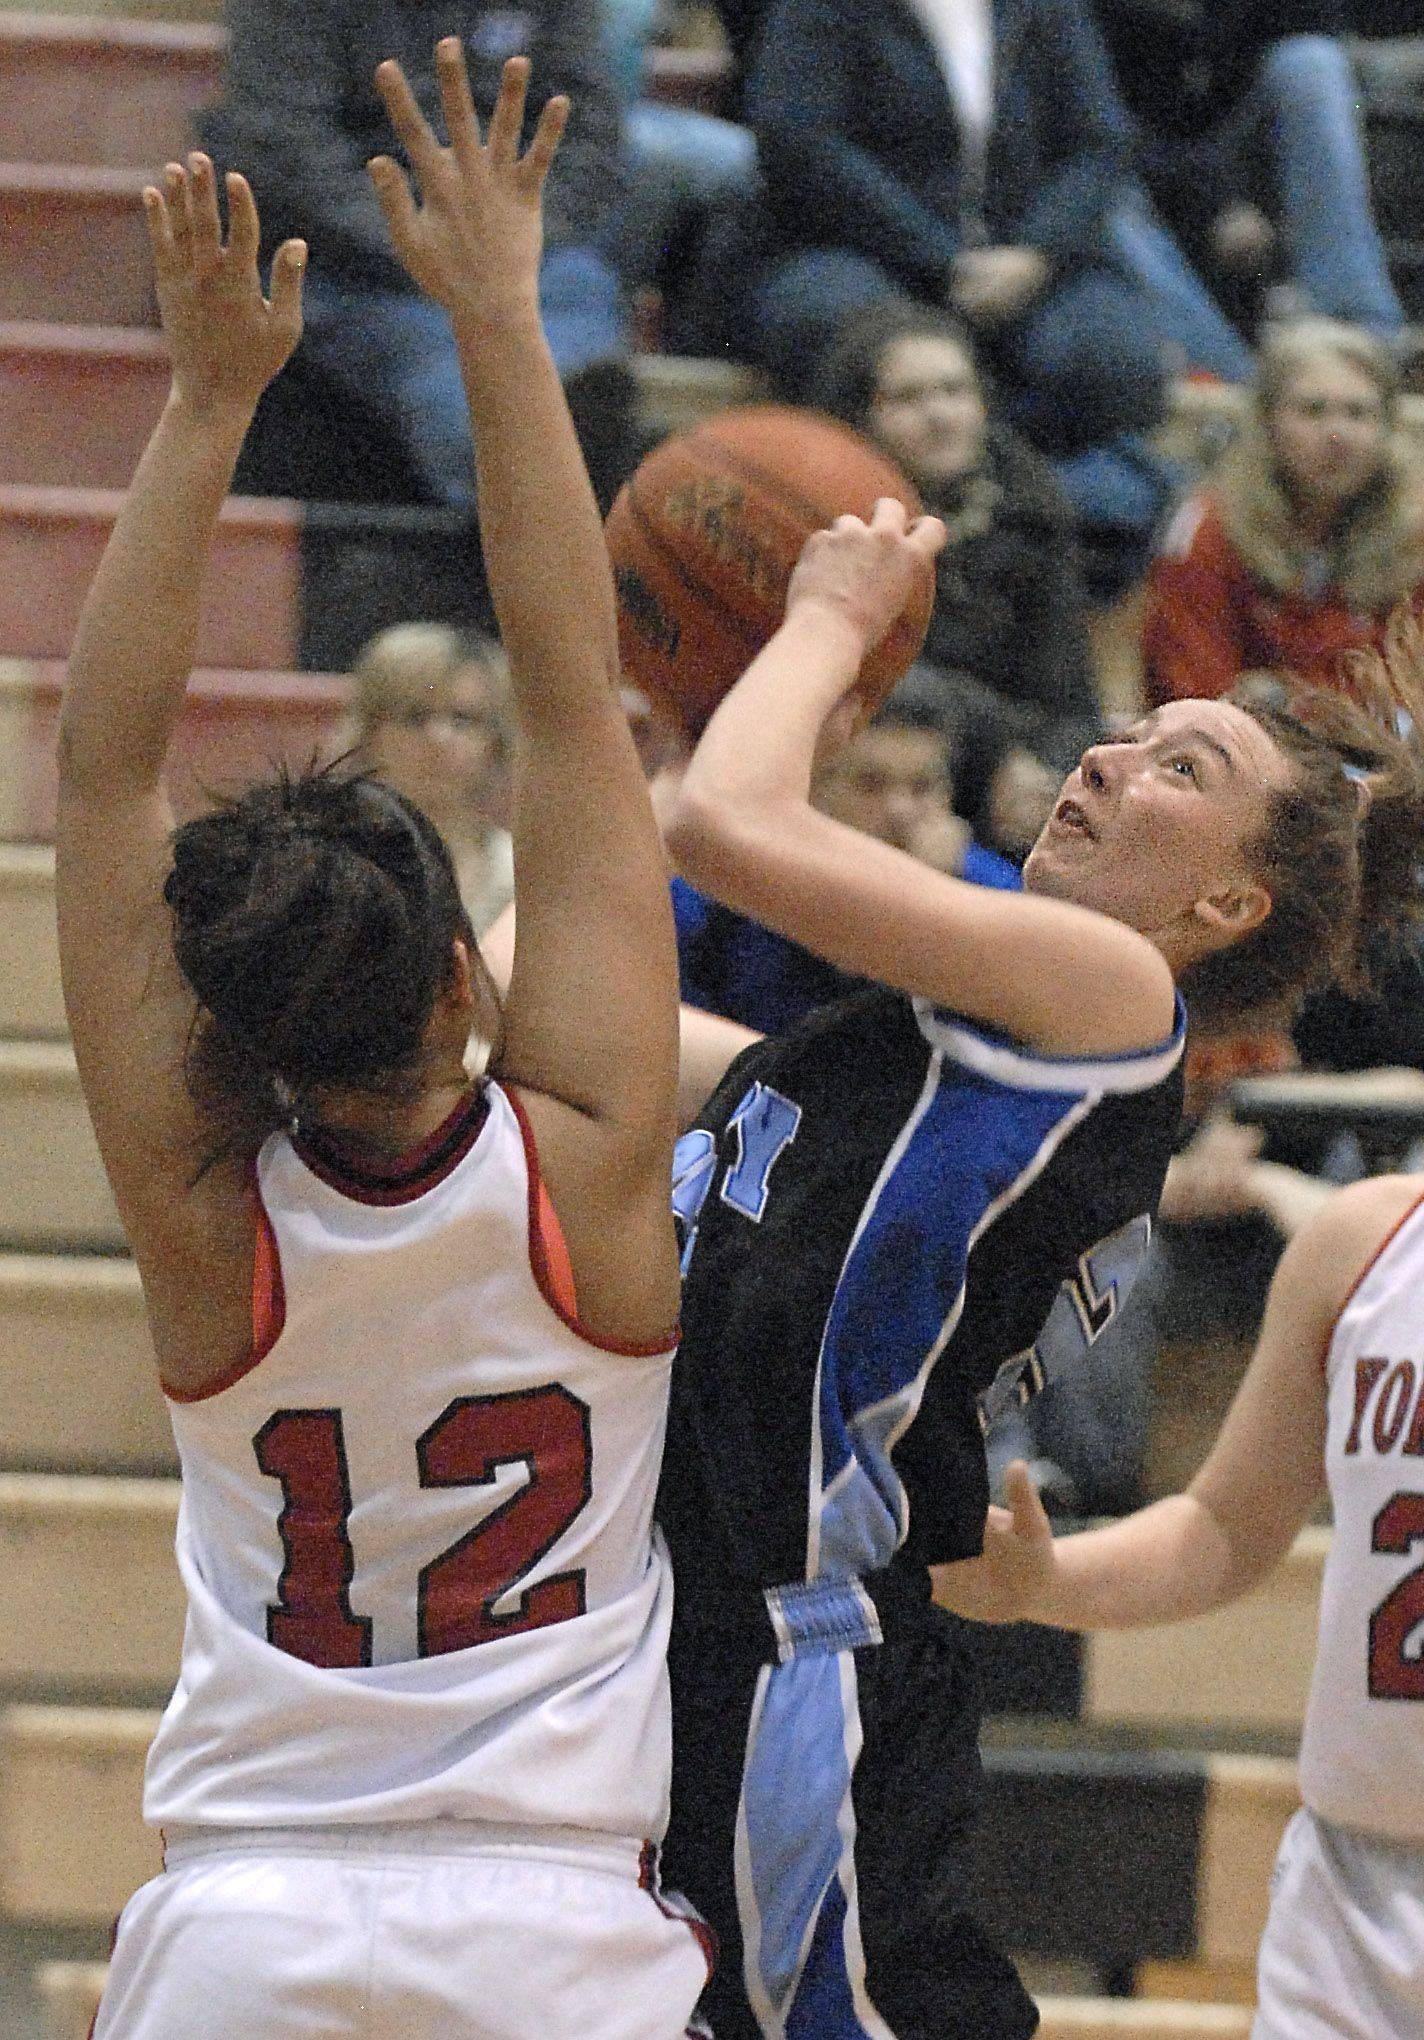 Rosary's Mary Wentworth is fouled by Yorkville's Paige Beach as she goes up for a shot in the third quarter on Wednesday, February 15.